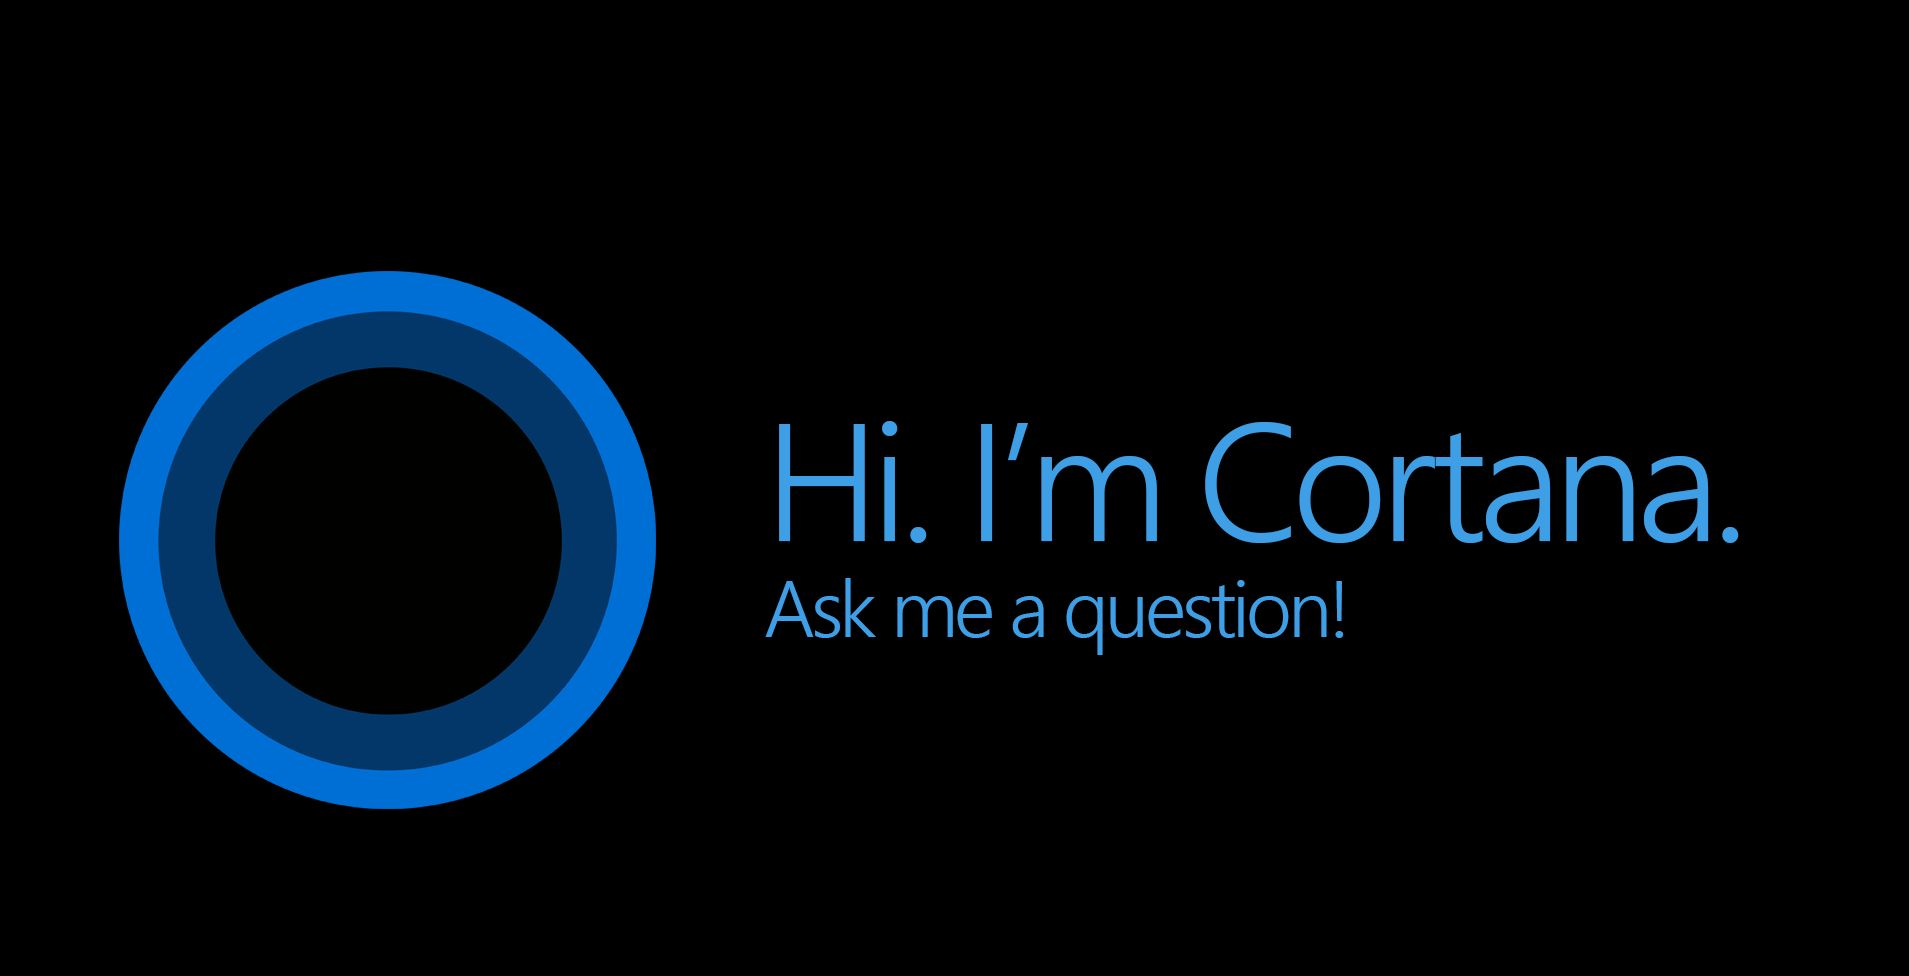 Cortana privacy concerns